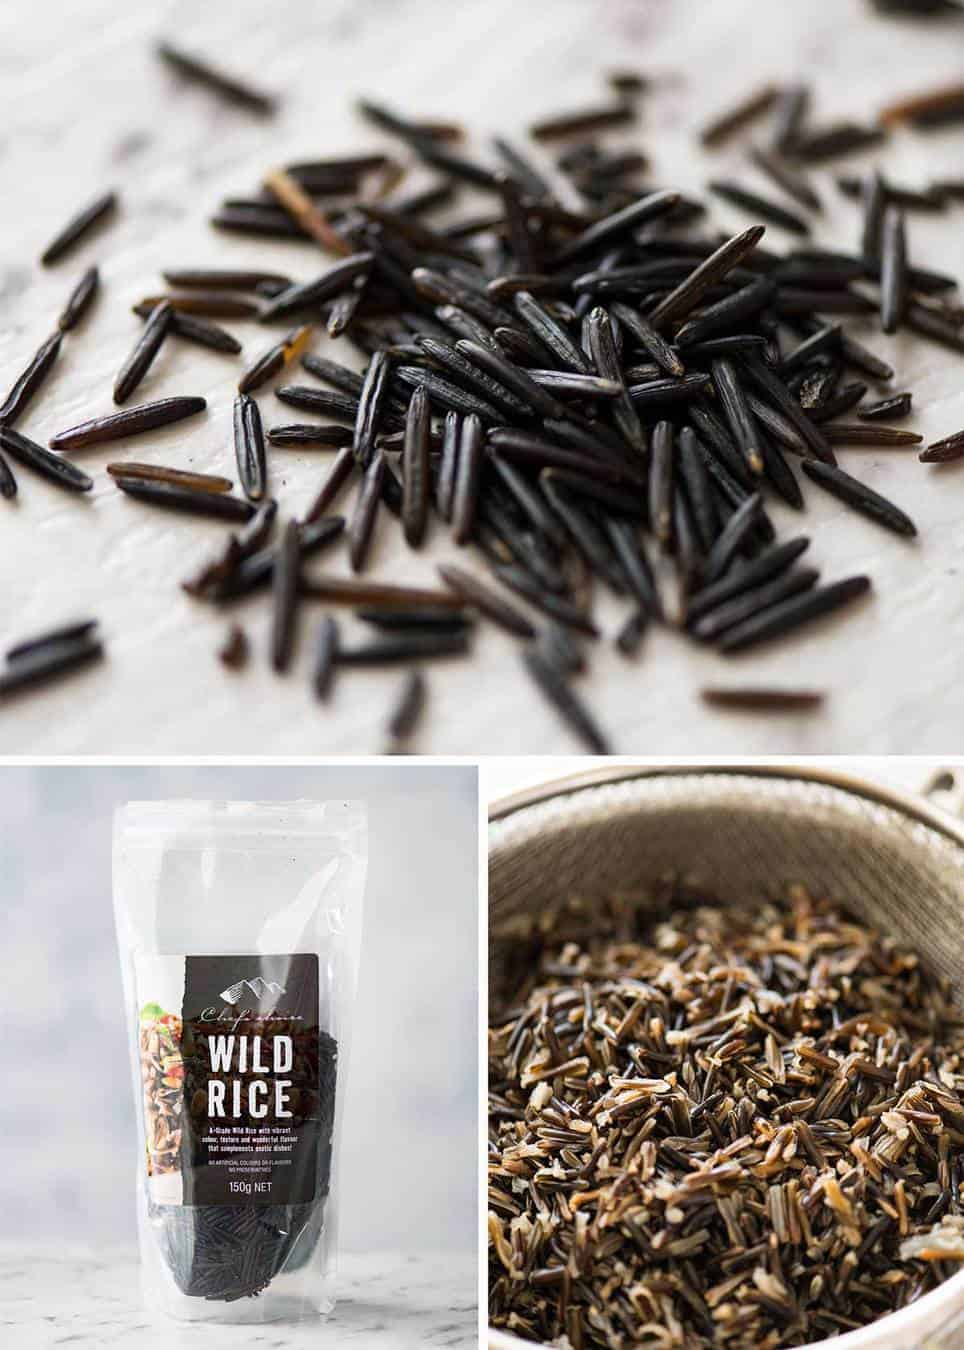 Wild Rice is actually a grain, not rice. It tastes nuttier and toasted, much more flavour than rice! www.recipetineats.com